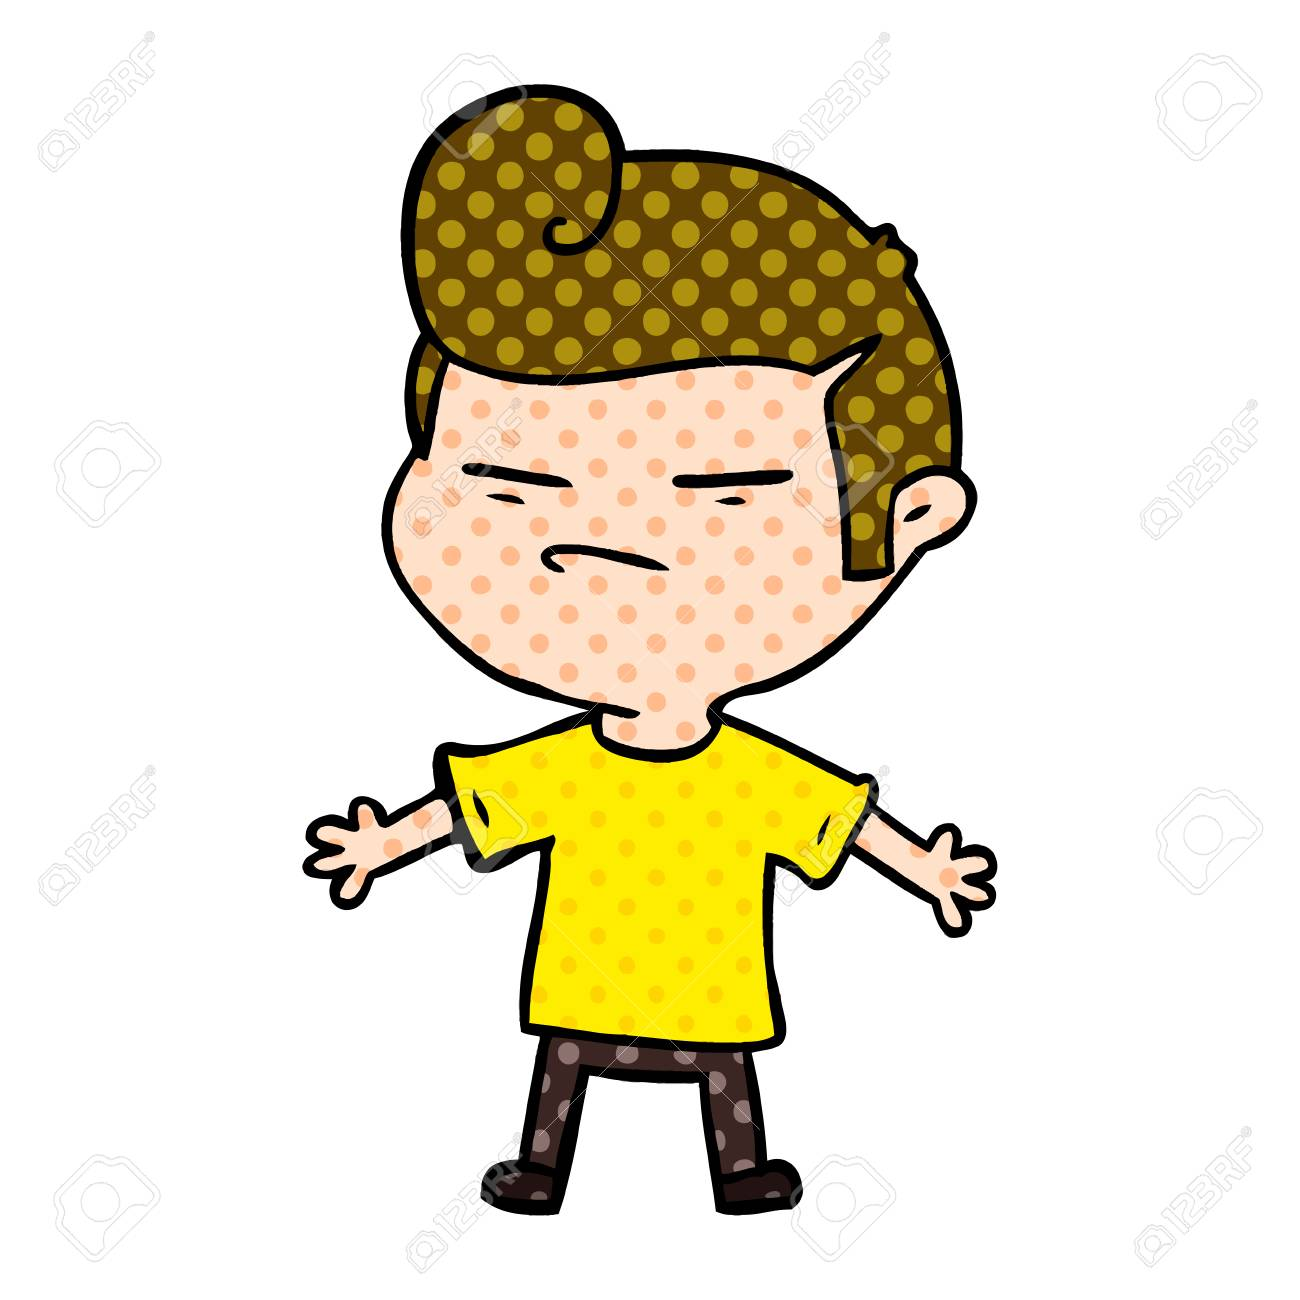 cartoon cool guy with fashion hair cut royalty free cliparts